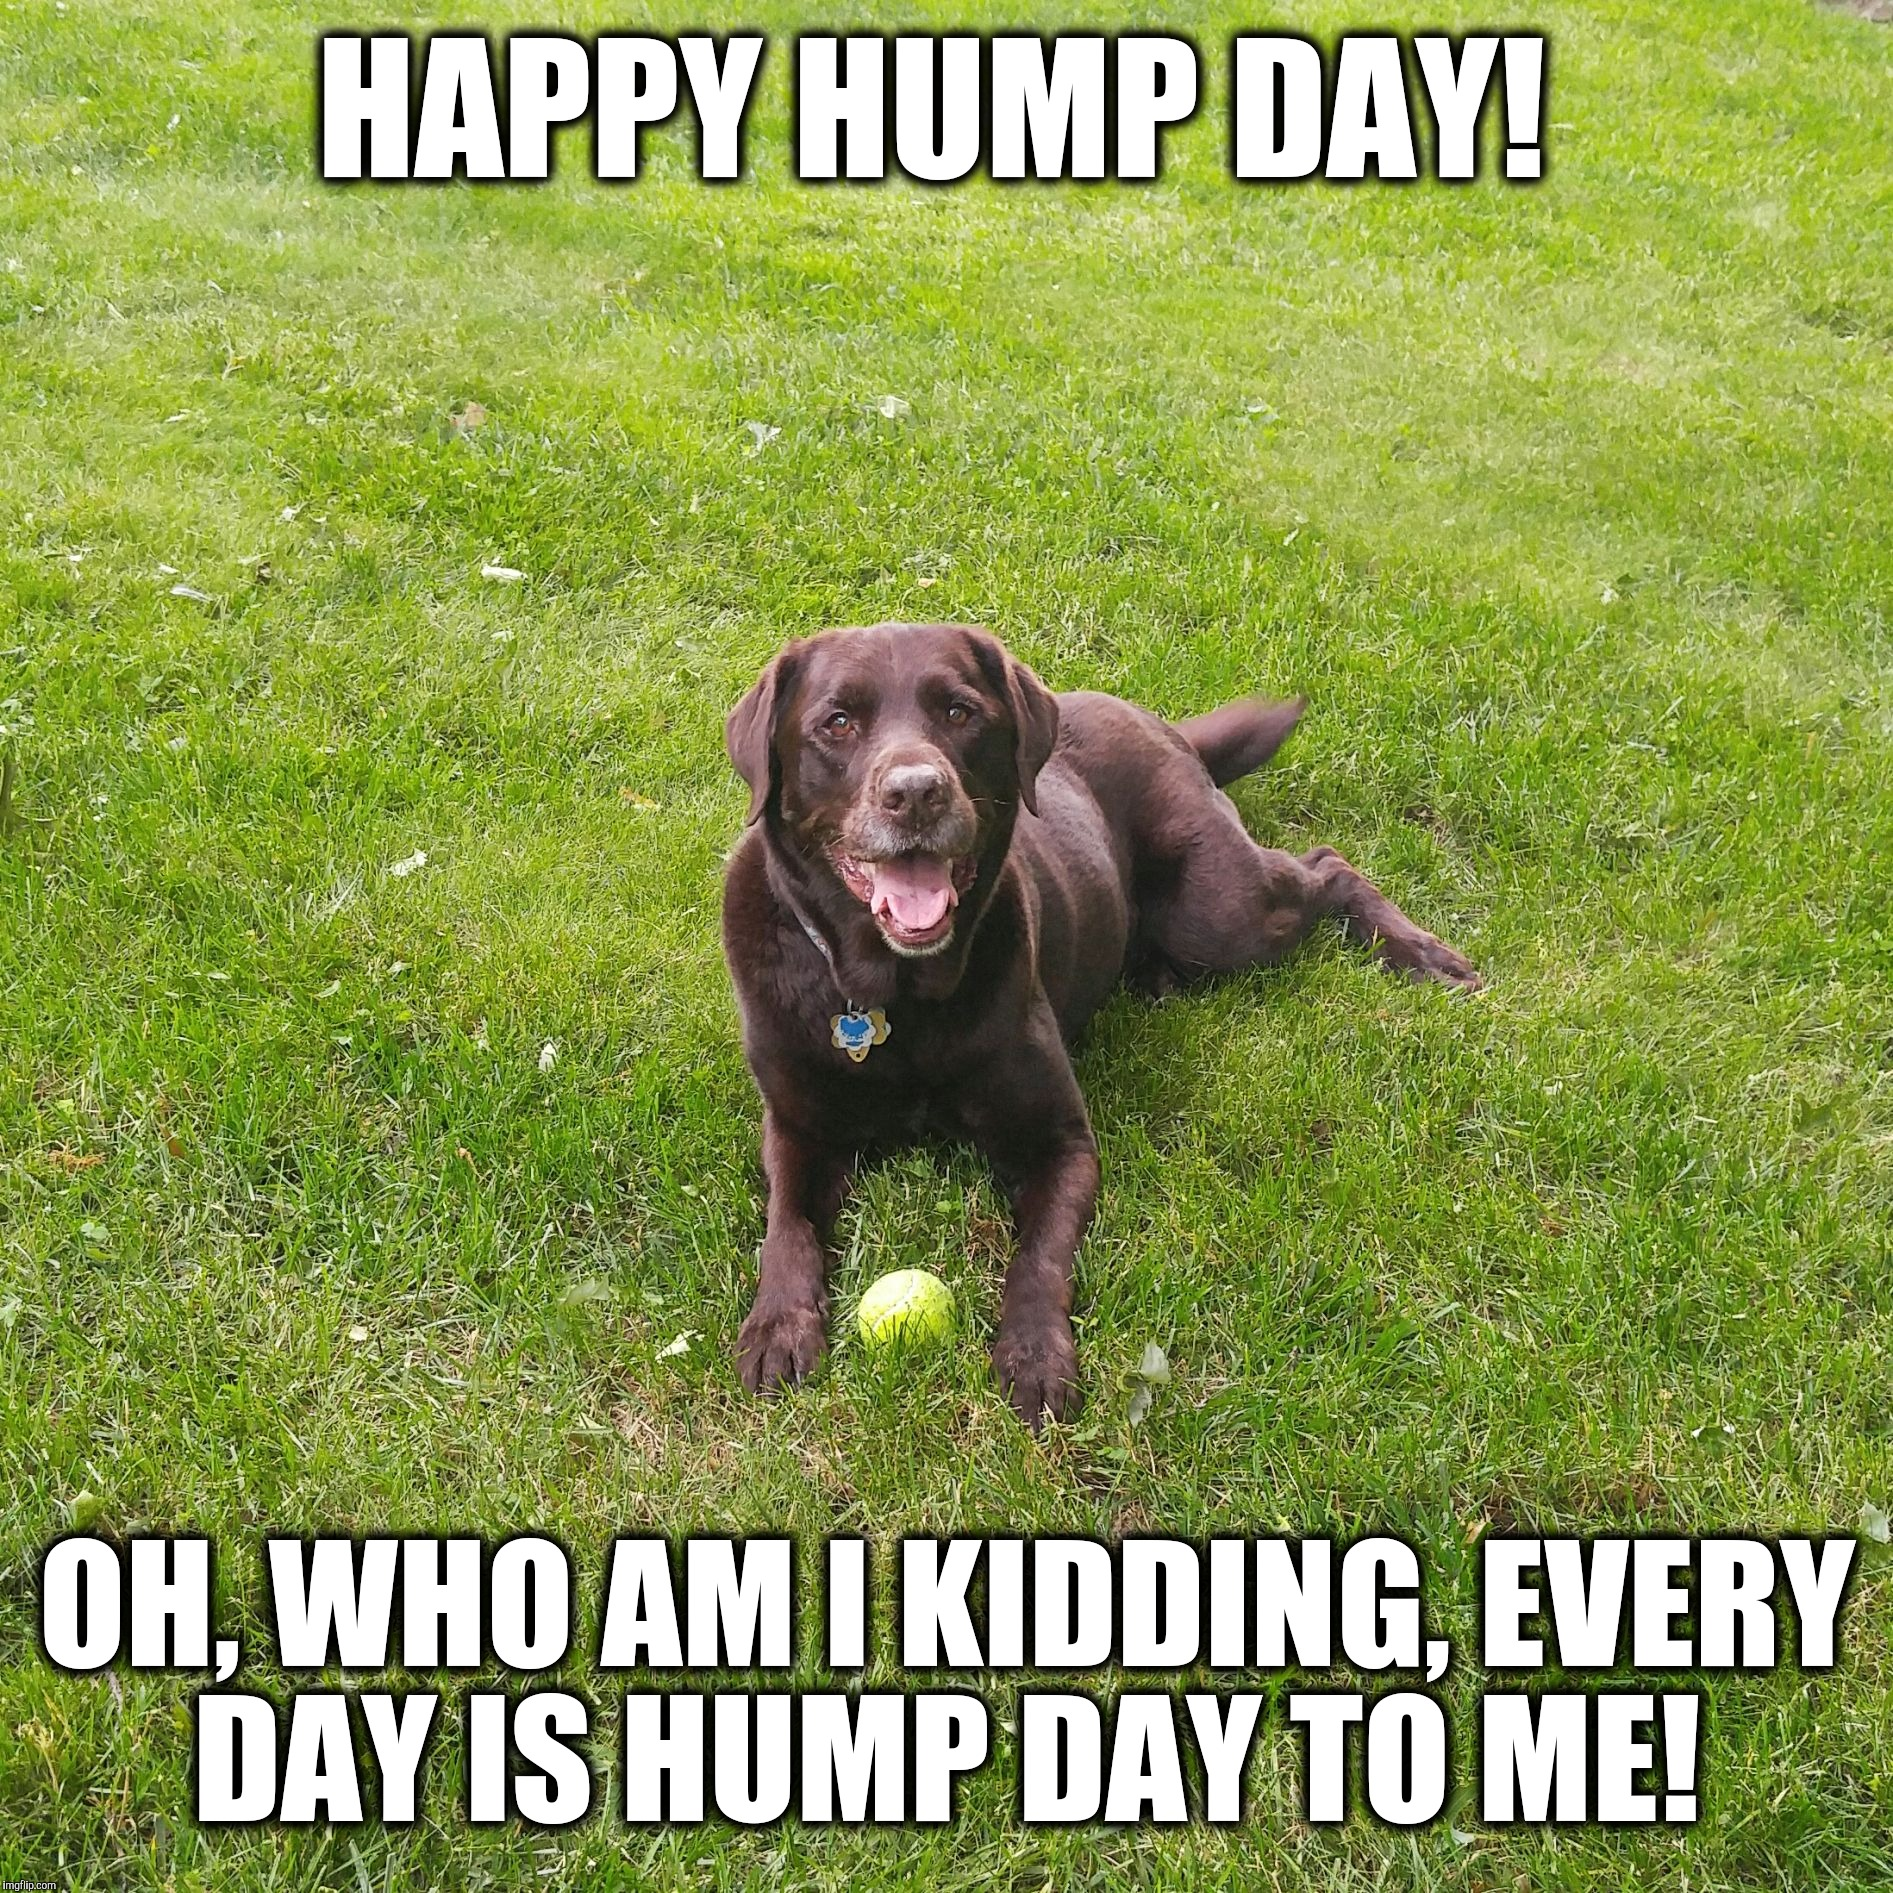 Happy Hump Day!  | HAPPY HUMP DAY! OH, WHO AM I KIDDING, EVERY DAY IS HUMP DAY TO ME! | image tagged in chuckie the chocolate lab,hump day,funny dog memes,funny,dog,labrador | made w/ Imgflip meme maker